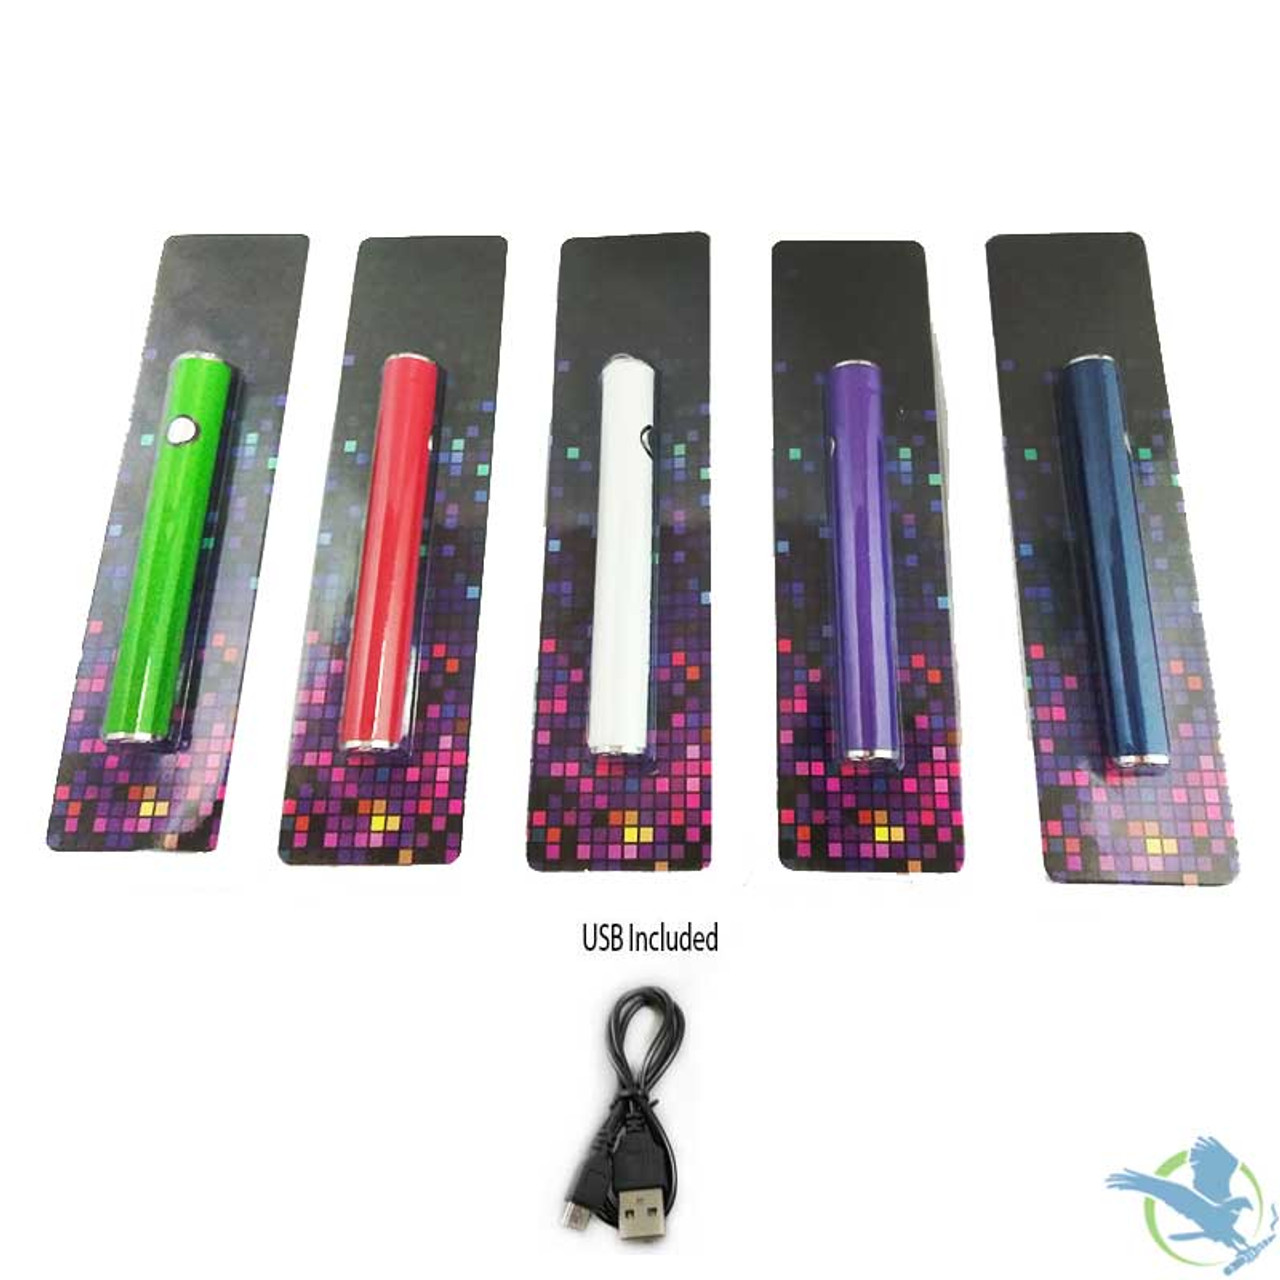 Variable Voltage 510 Thread CE3 400mAh Battery With Micro USB Passthrough  And USB Cable Included (MSRP $15 00)